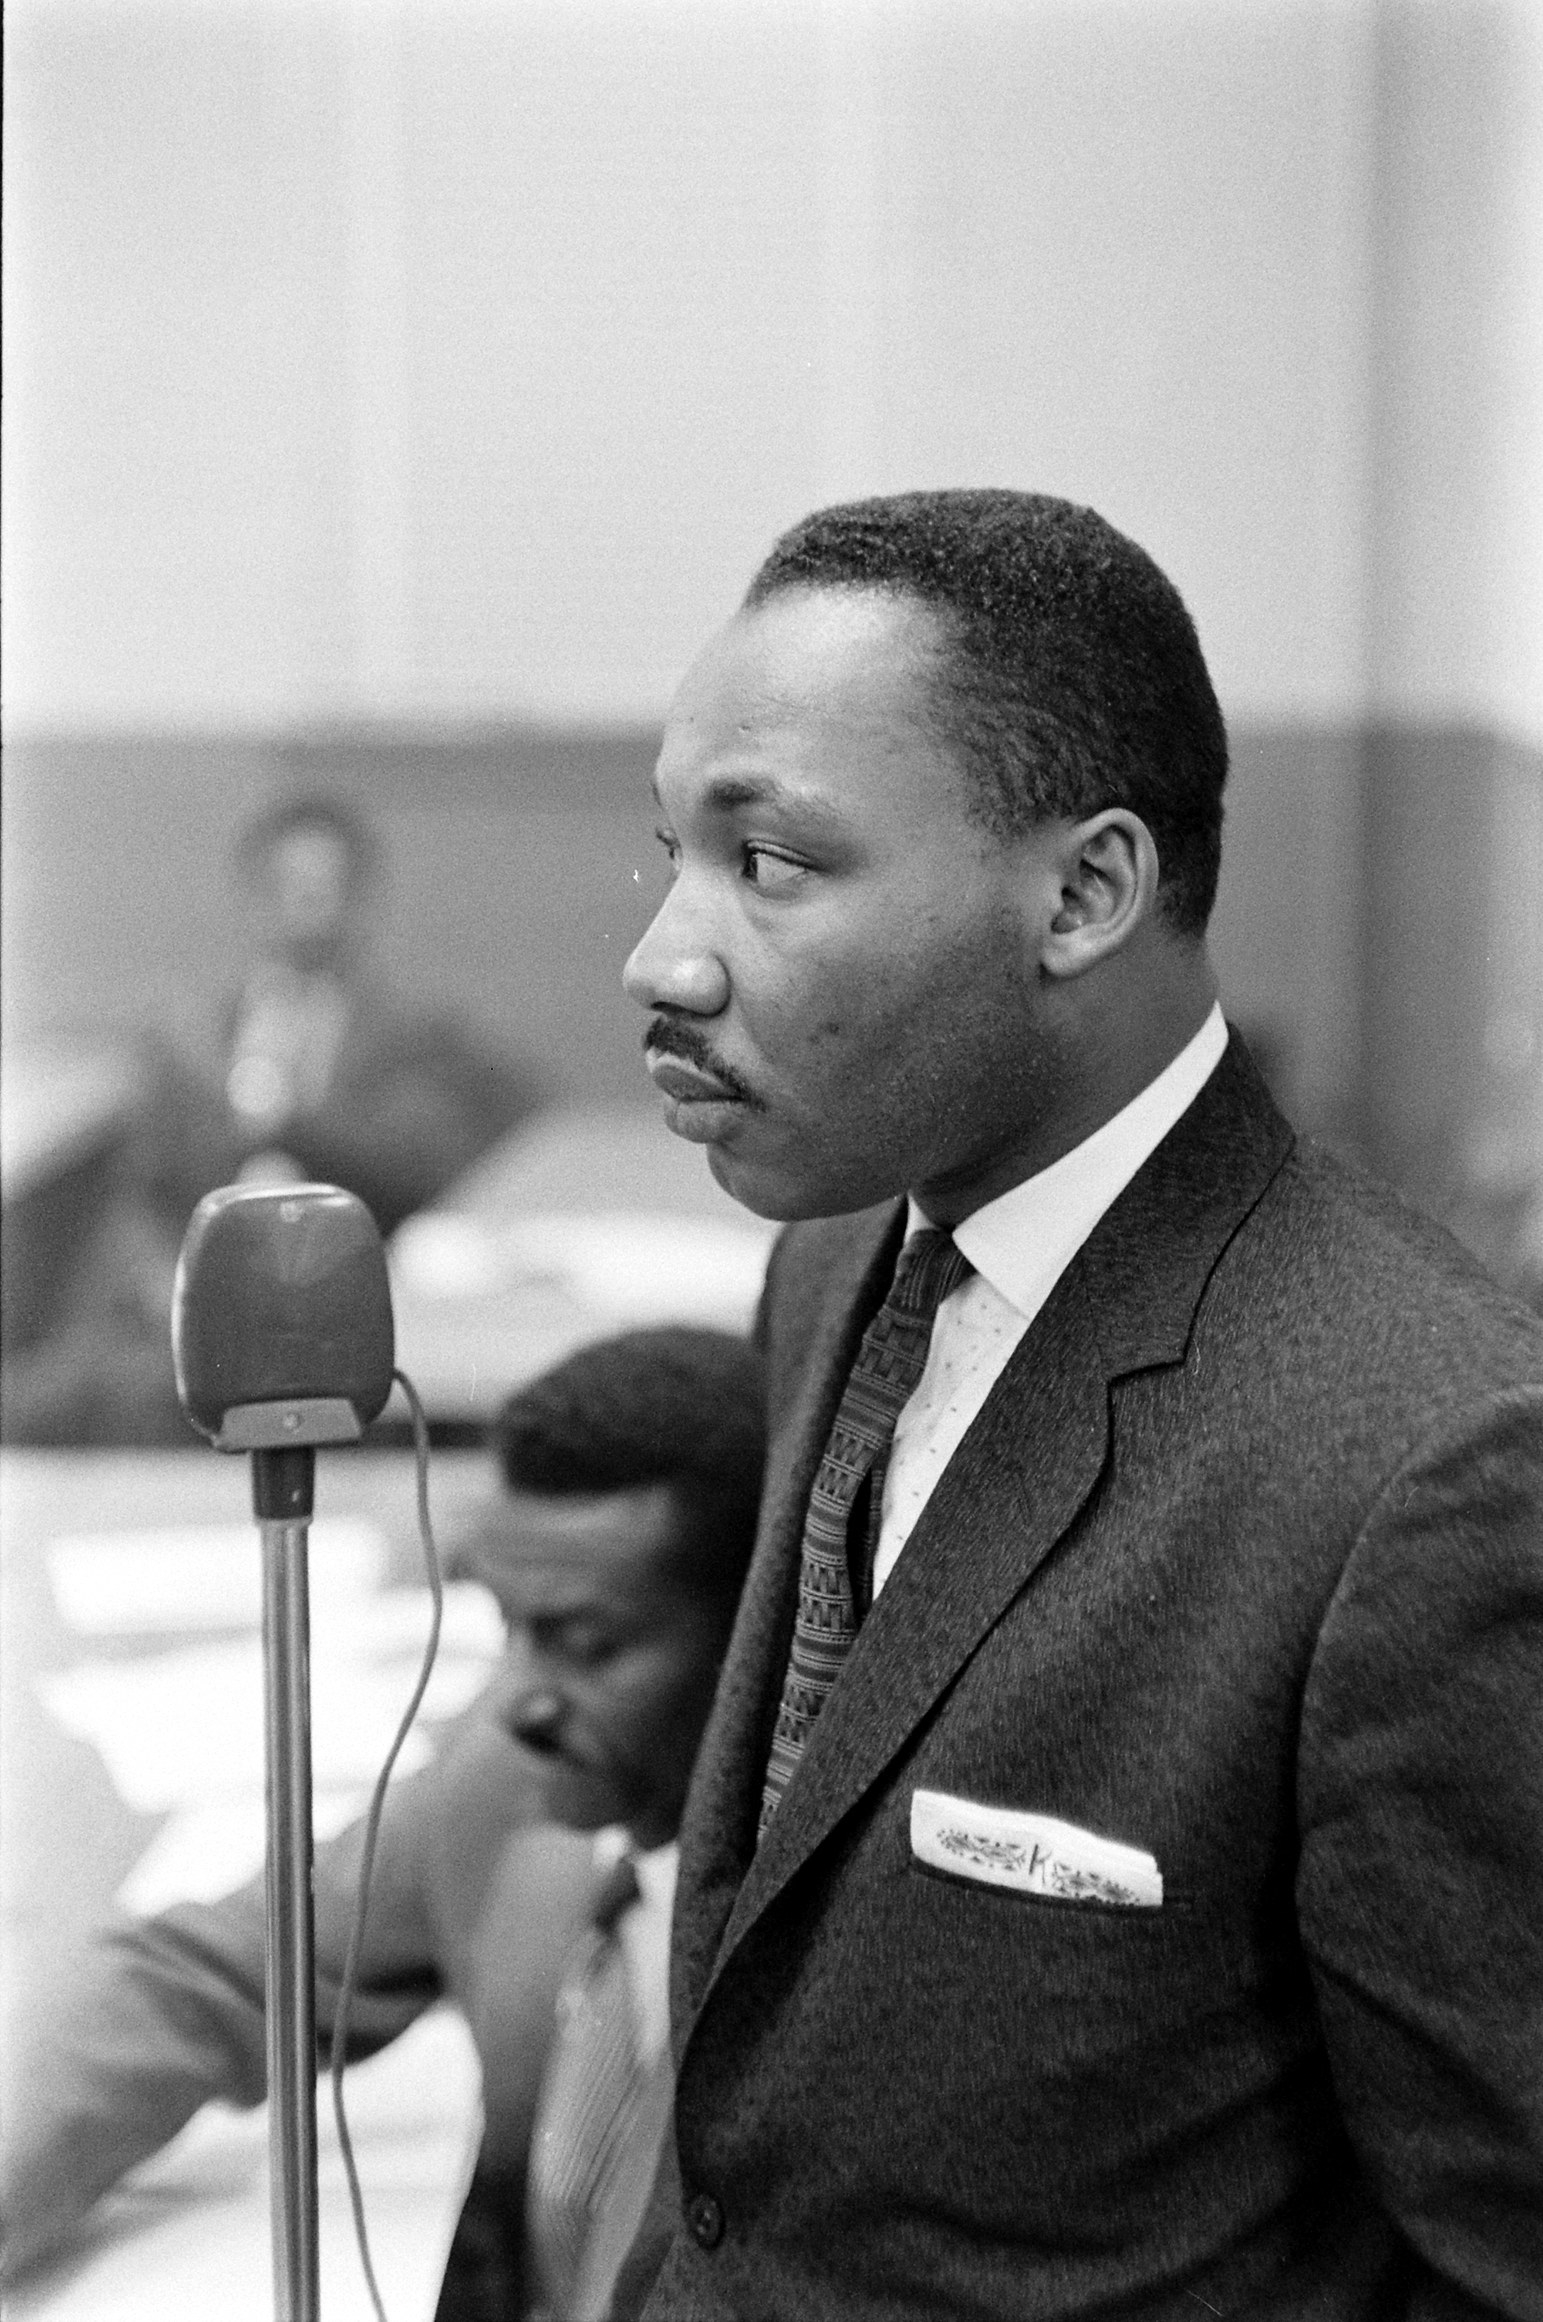 A man wearing a suit stands at a microphone.